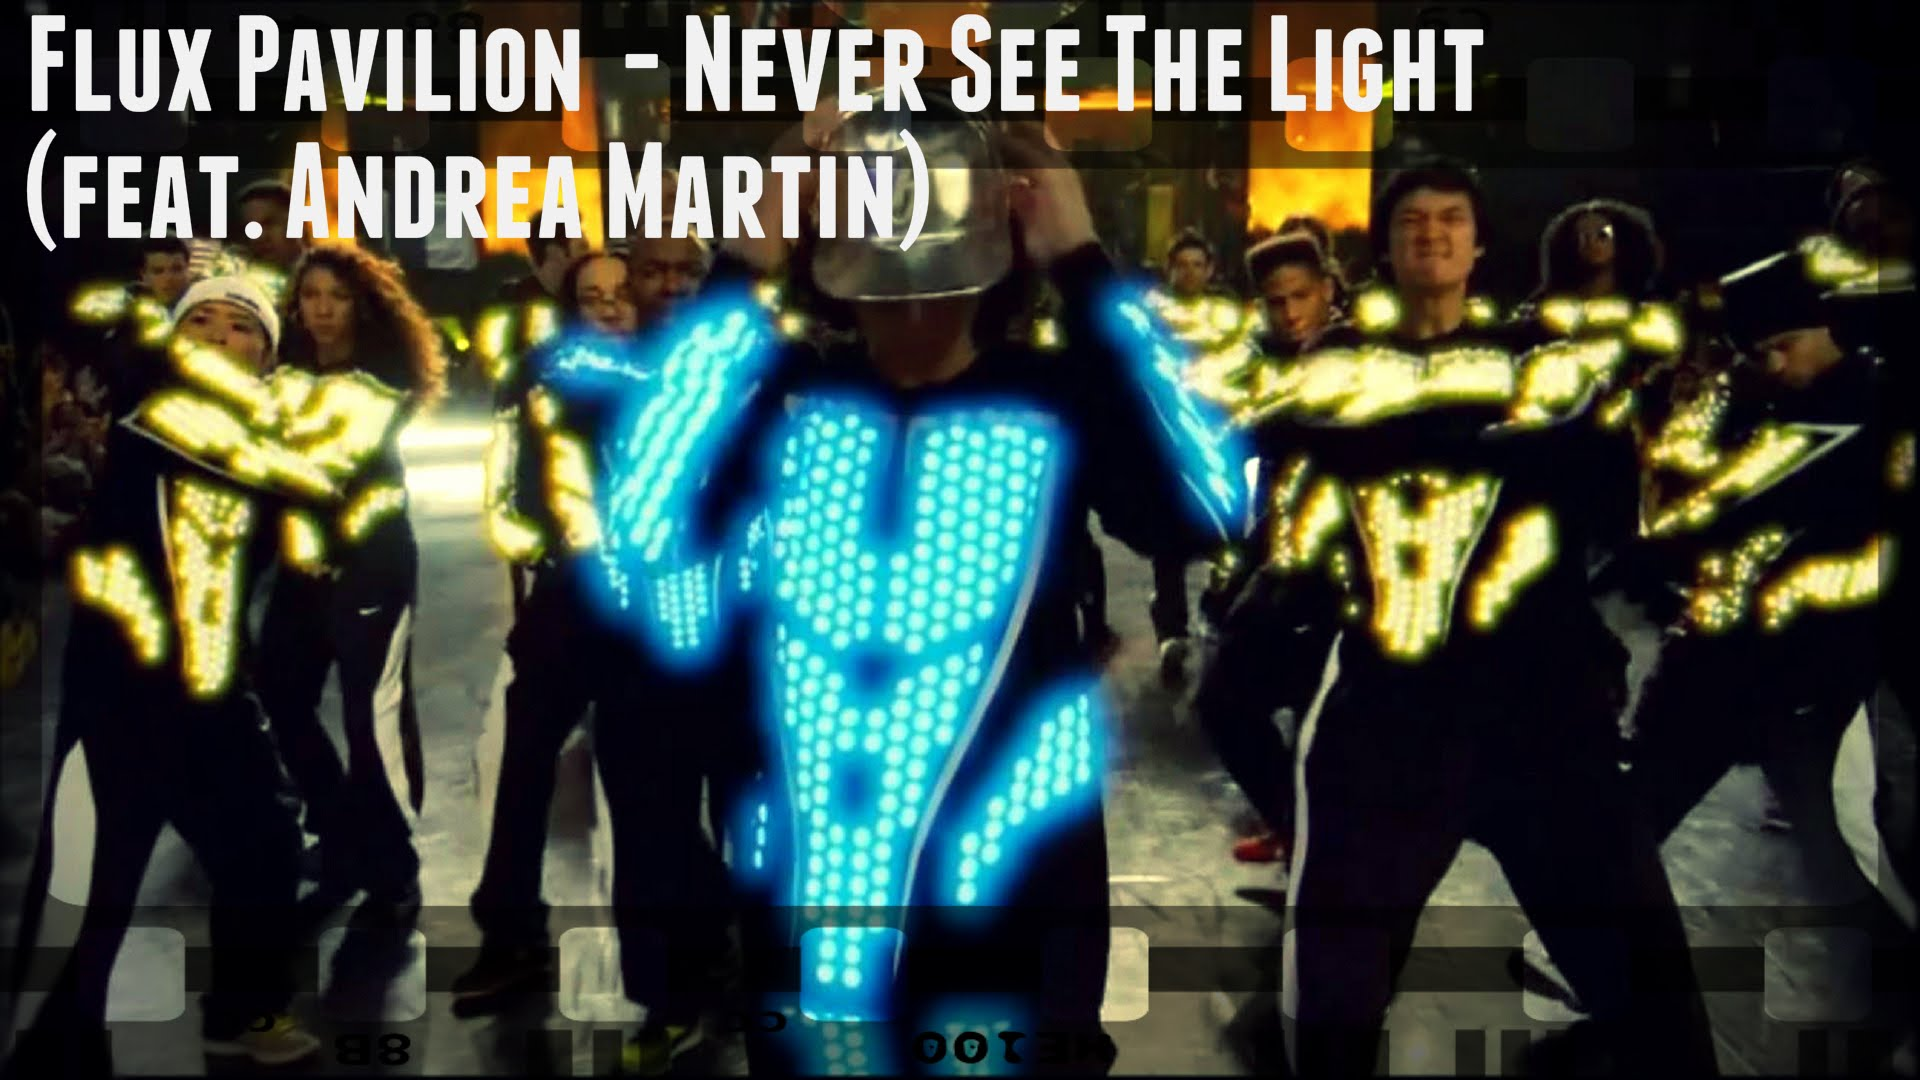 Flux Pavilion feat. Andrea Martin - Never See The Light v2